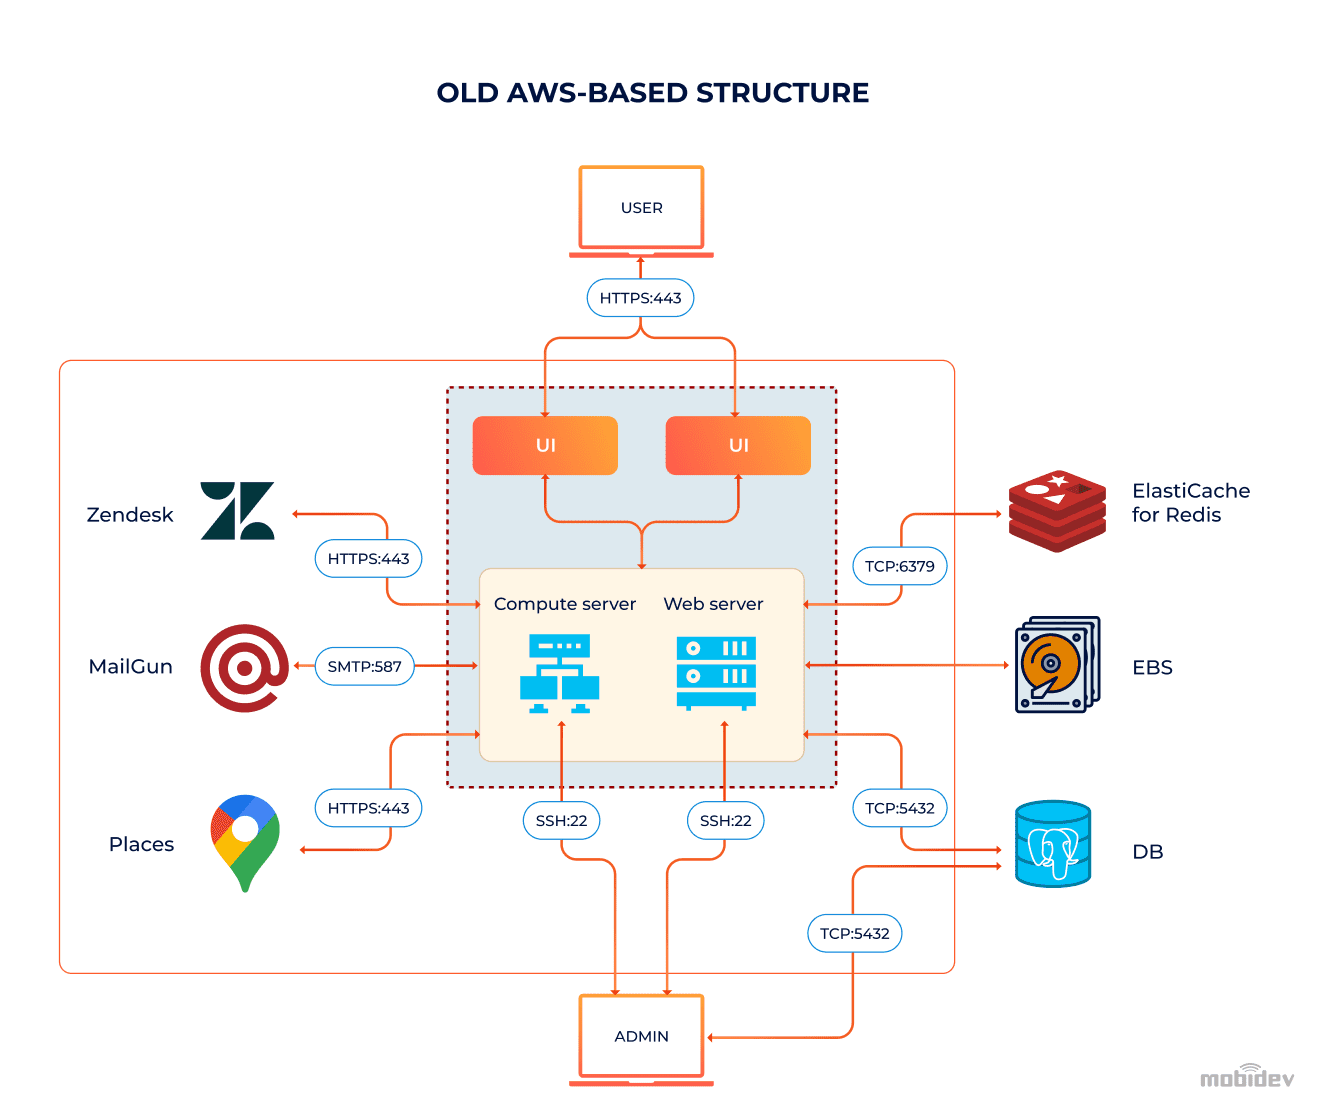 Old AWS-based structure